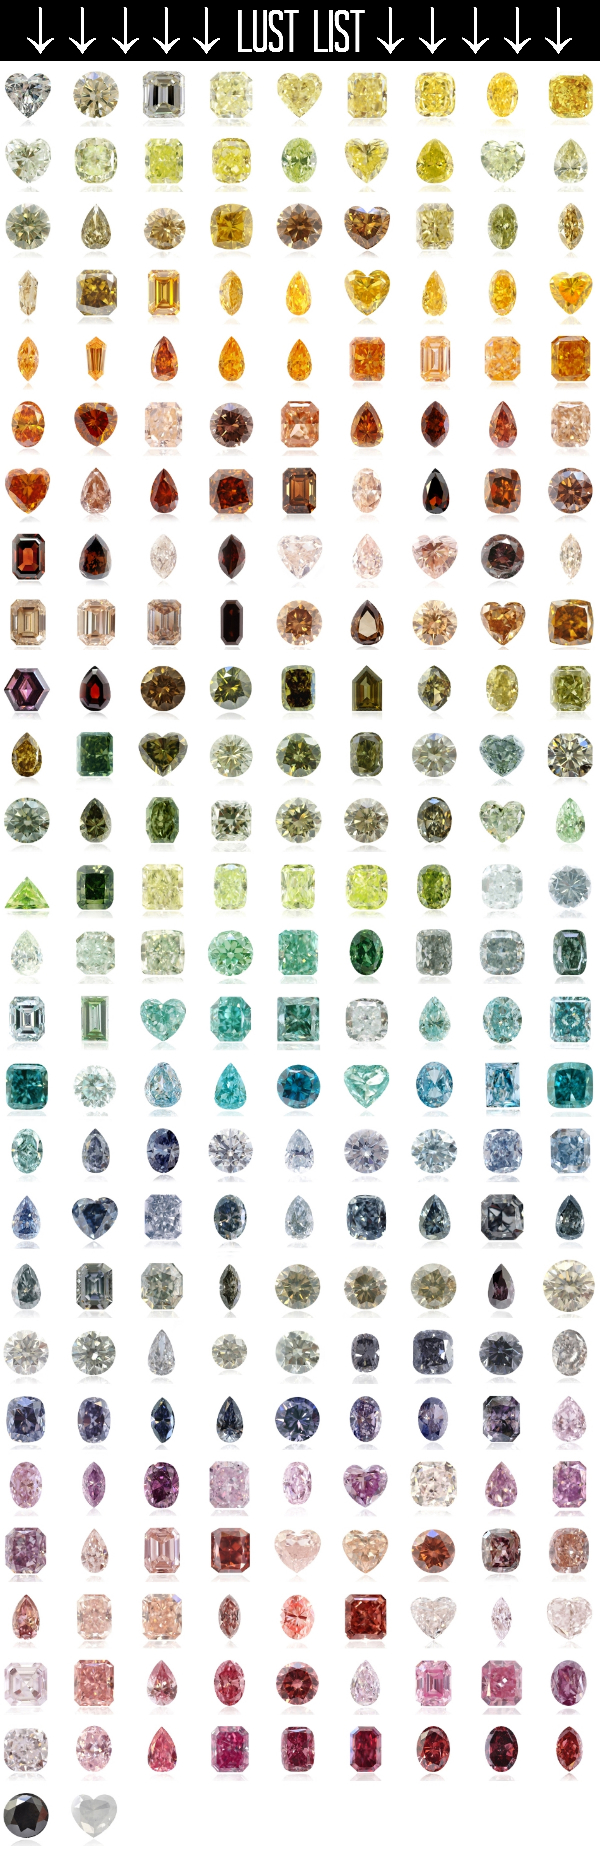 Daydream-In-Color-Lust-List-Colored-Diamonds